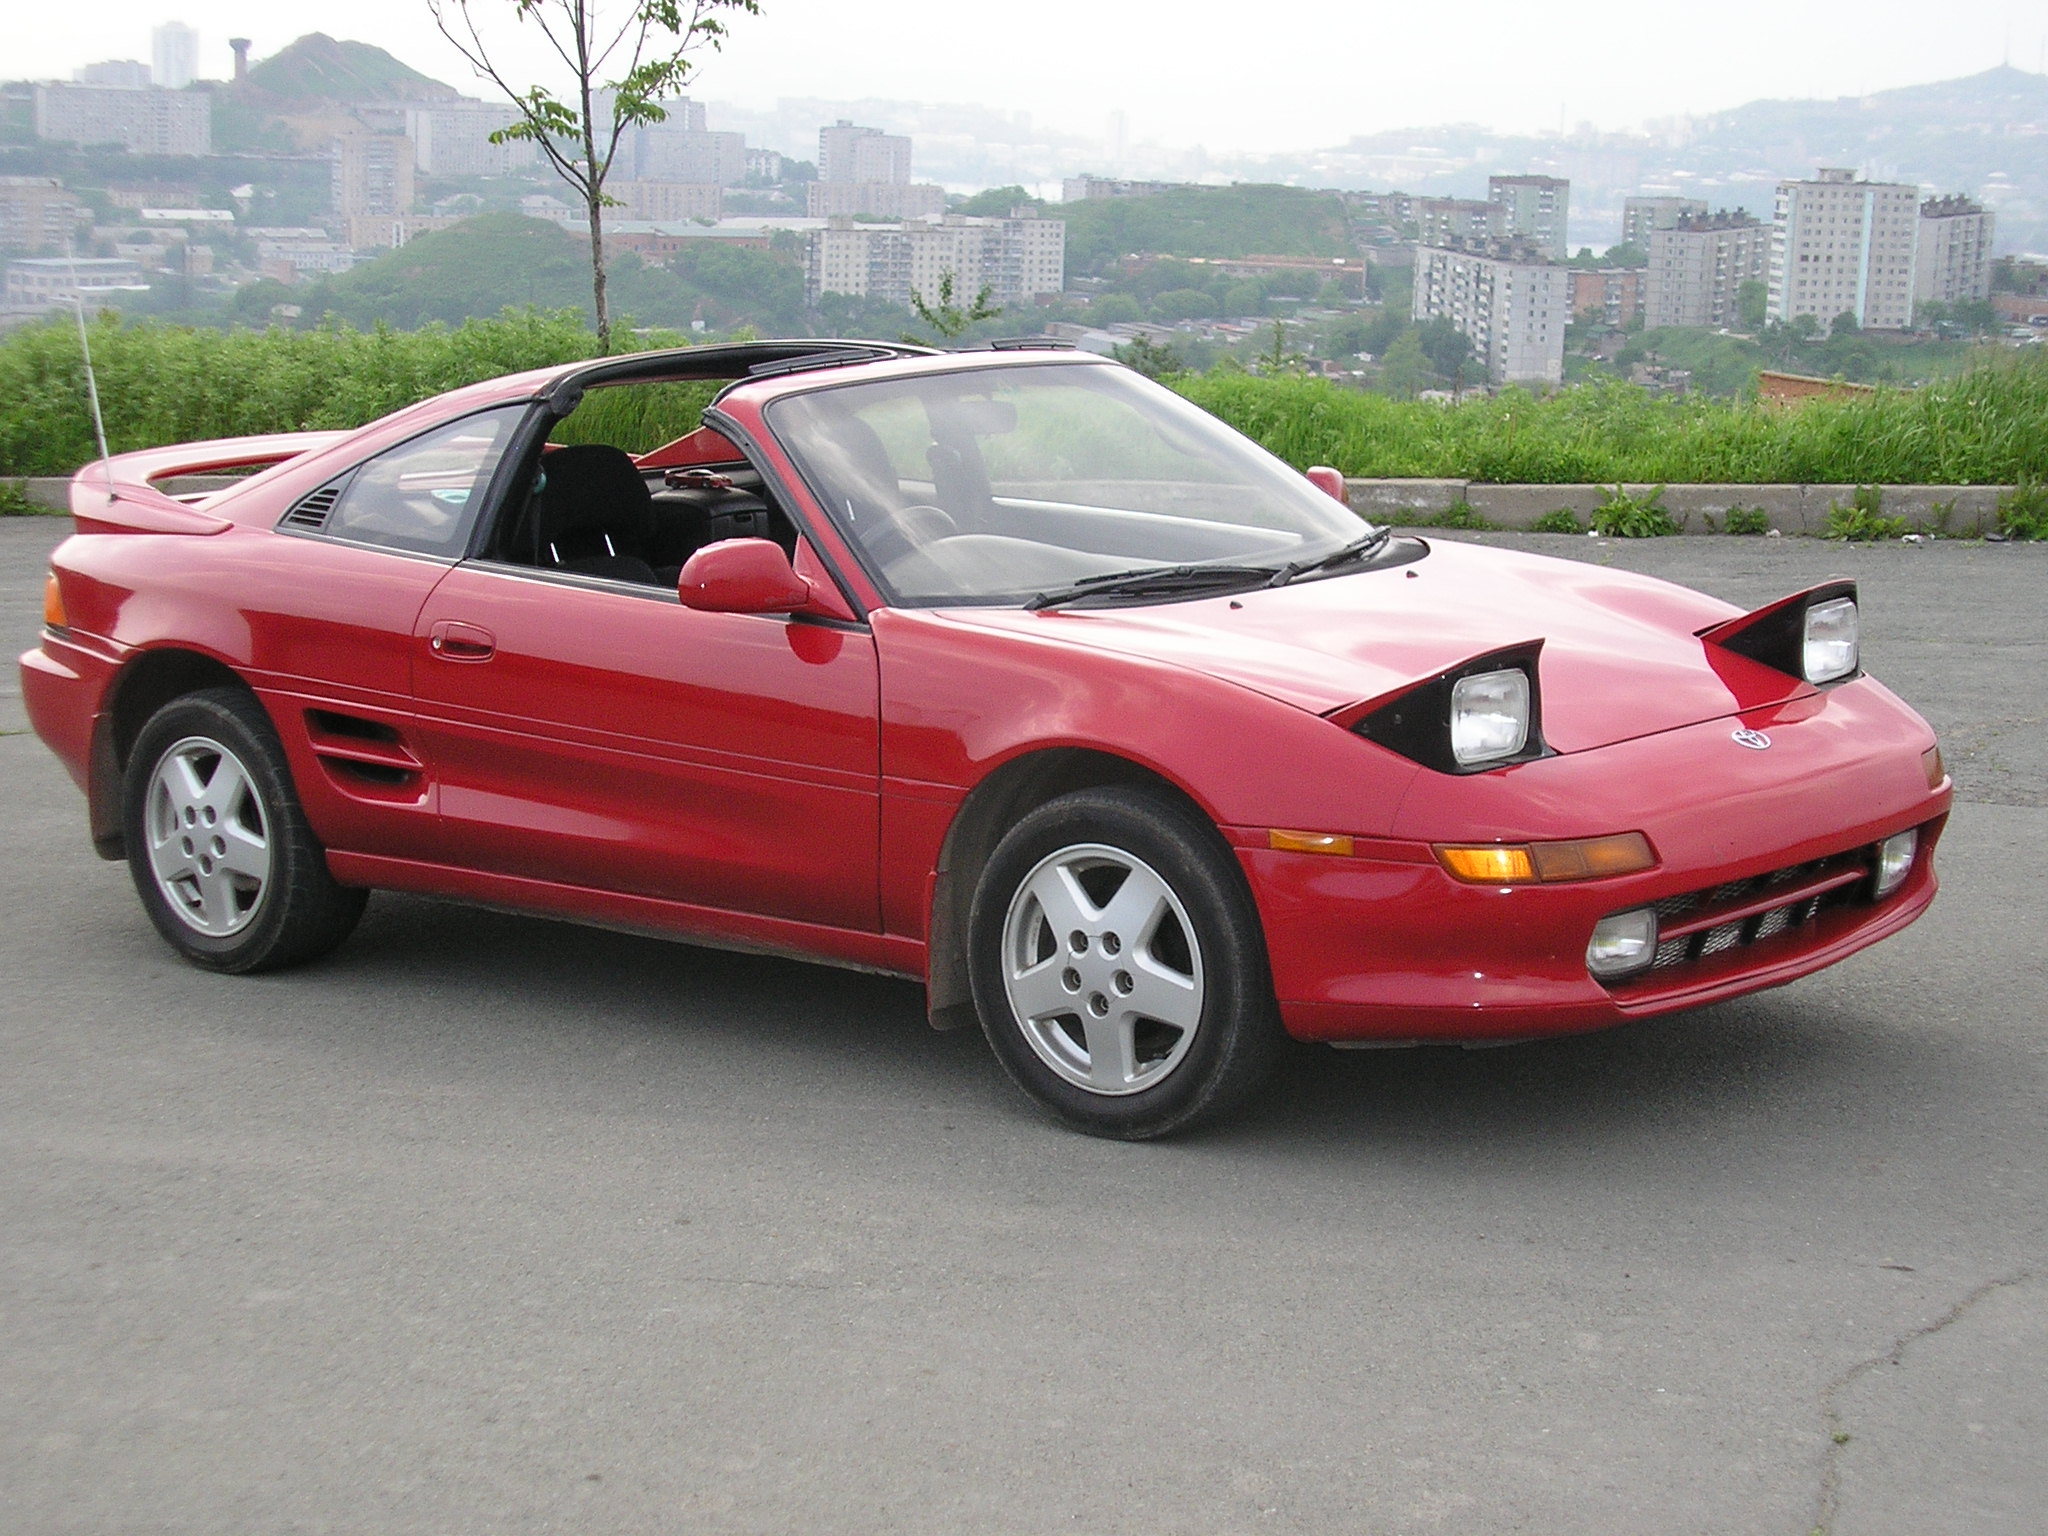 1994 Toyota Mr2 #2